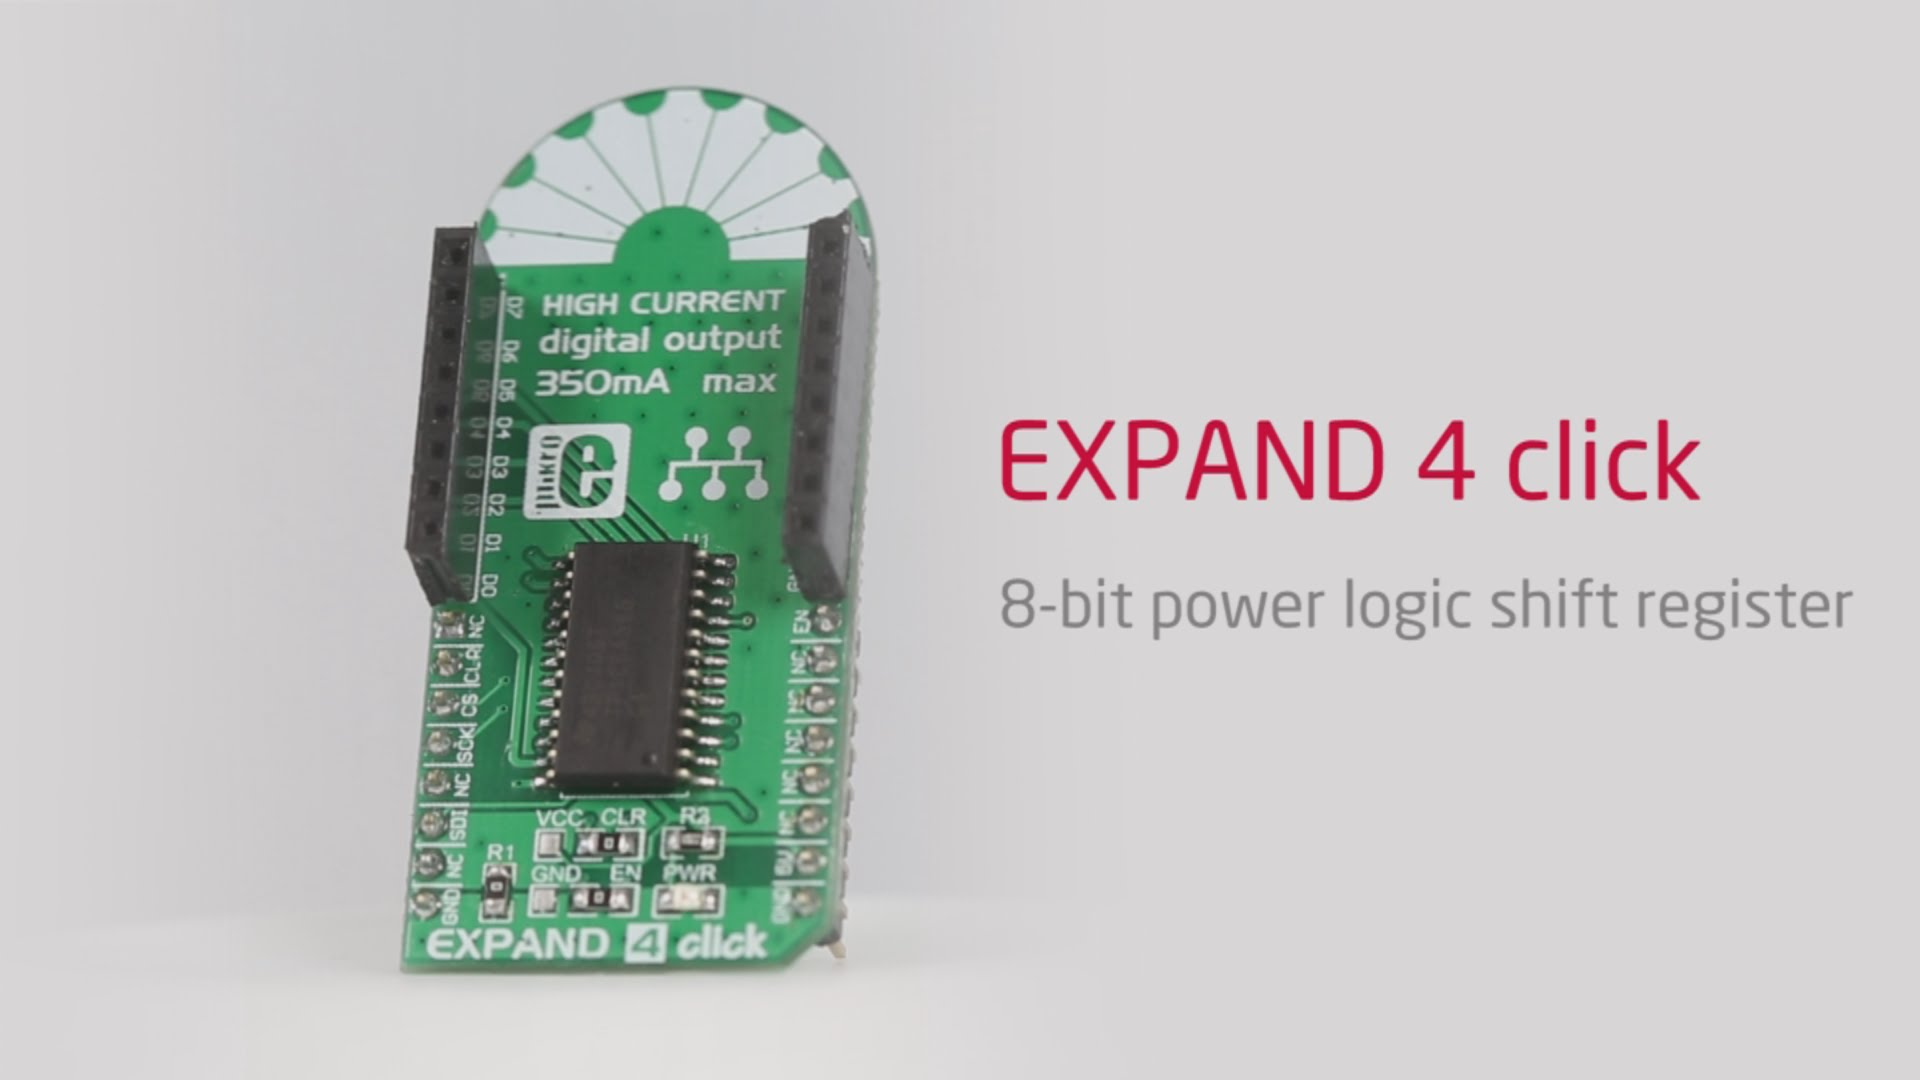 Expand 4 click handles high power peripherals